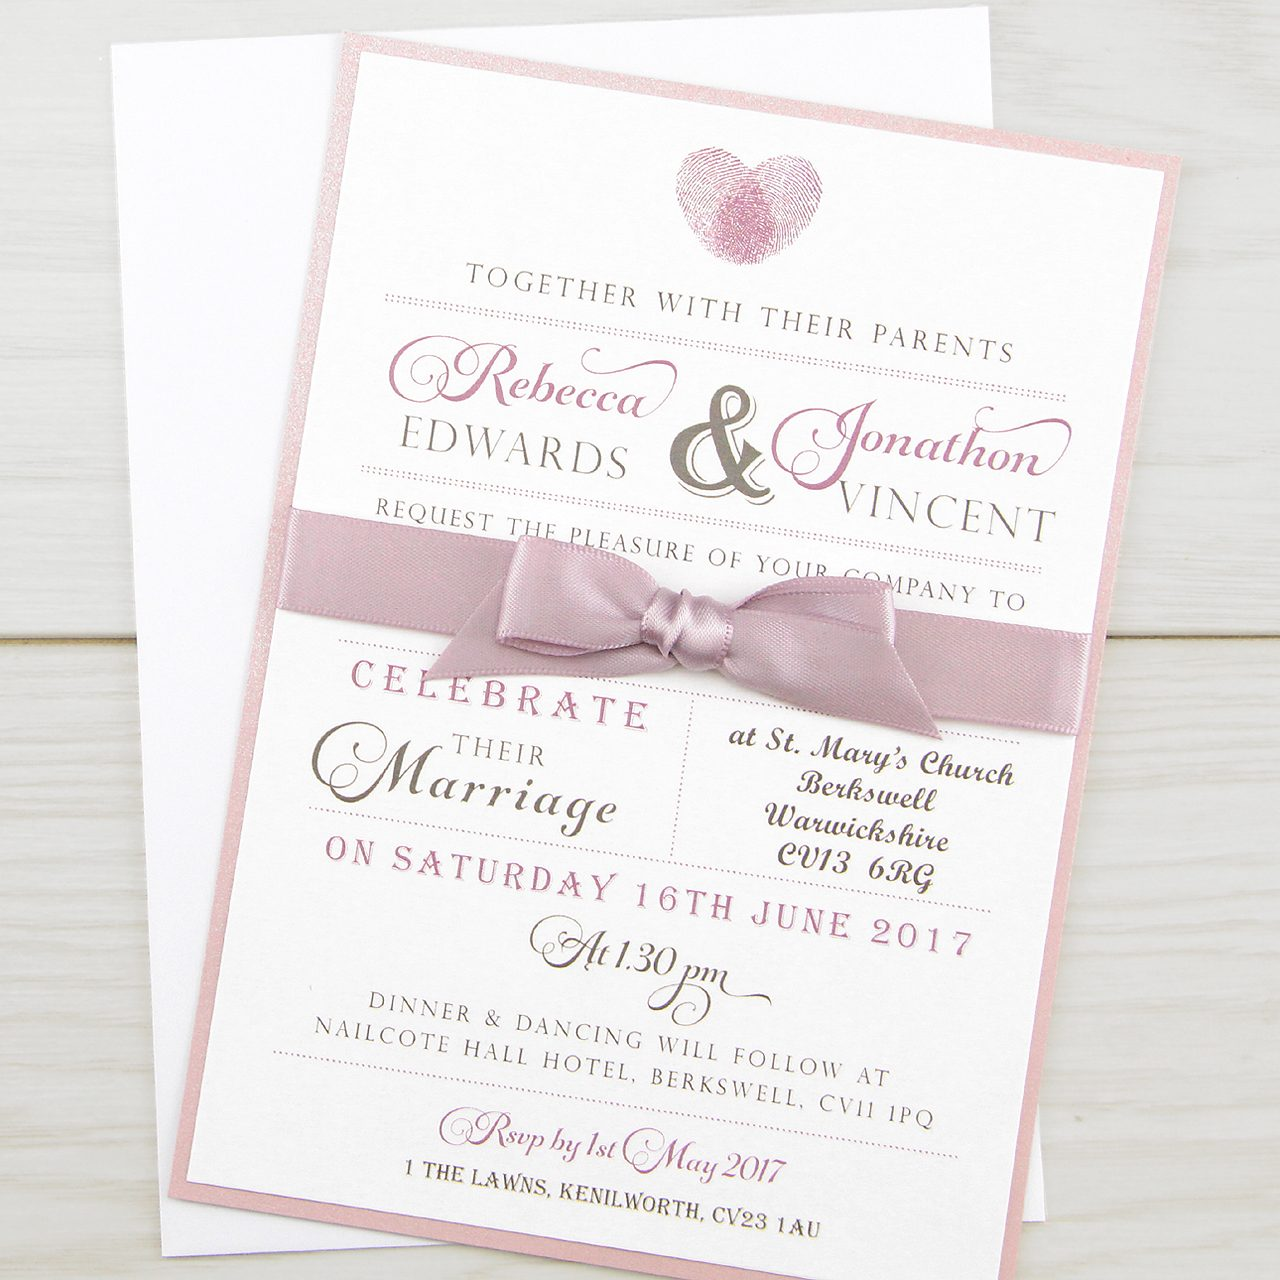 Thumb Print Parcel | Pure Invitation Wedding Invites